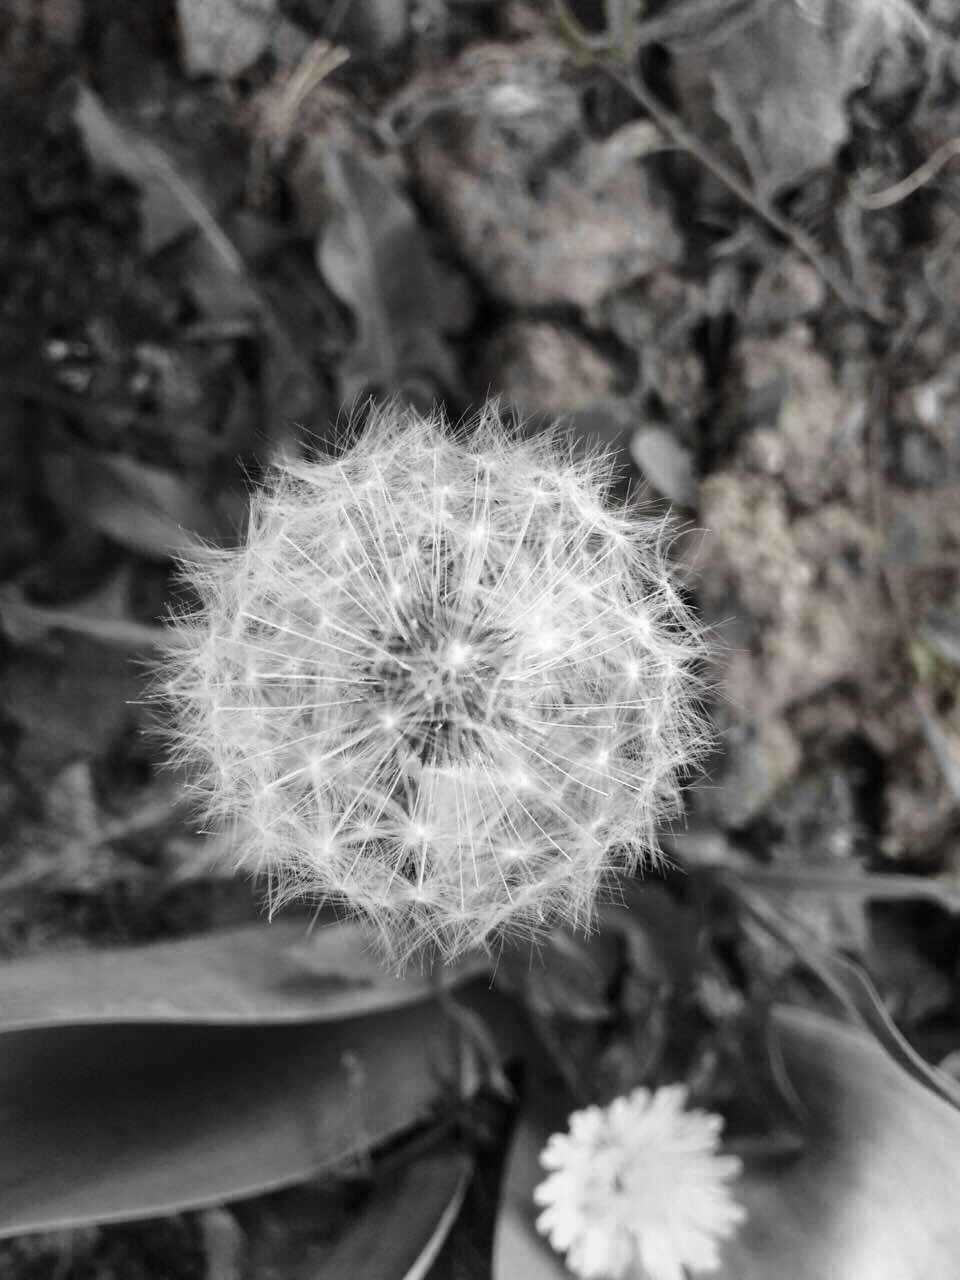 flower, dandelion, fragility, flower head, growth, nature, softness, plant, freshness, uncultivated, close-up, beauty in nature, focus on foreground, wildflower, blossom, springtime, petal, outdoors, day, blooming, hope, no people